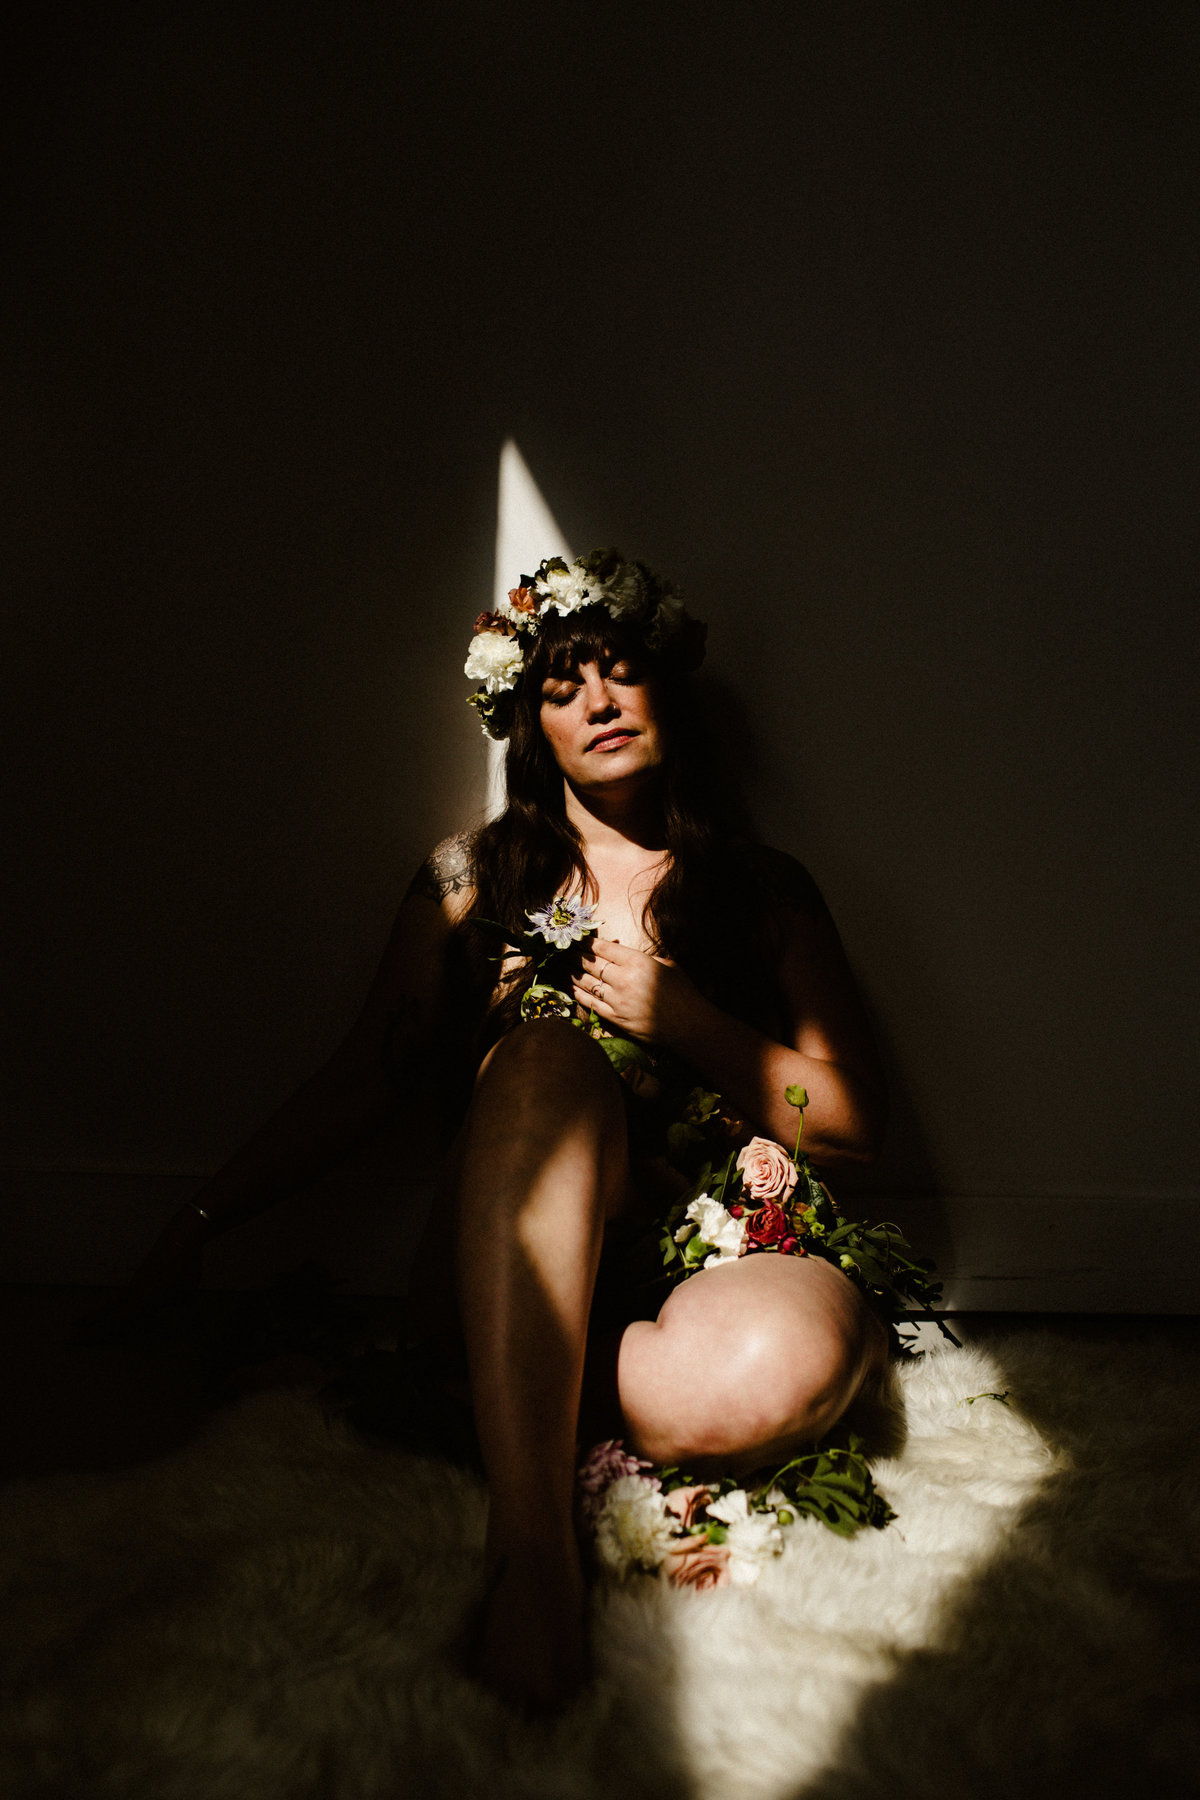 nude woman covered in flowers